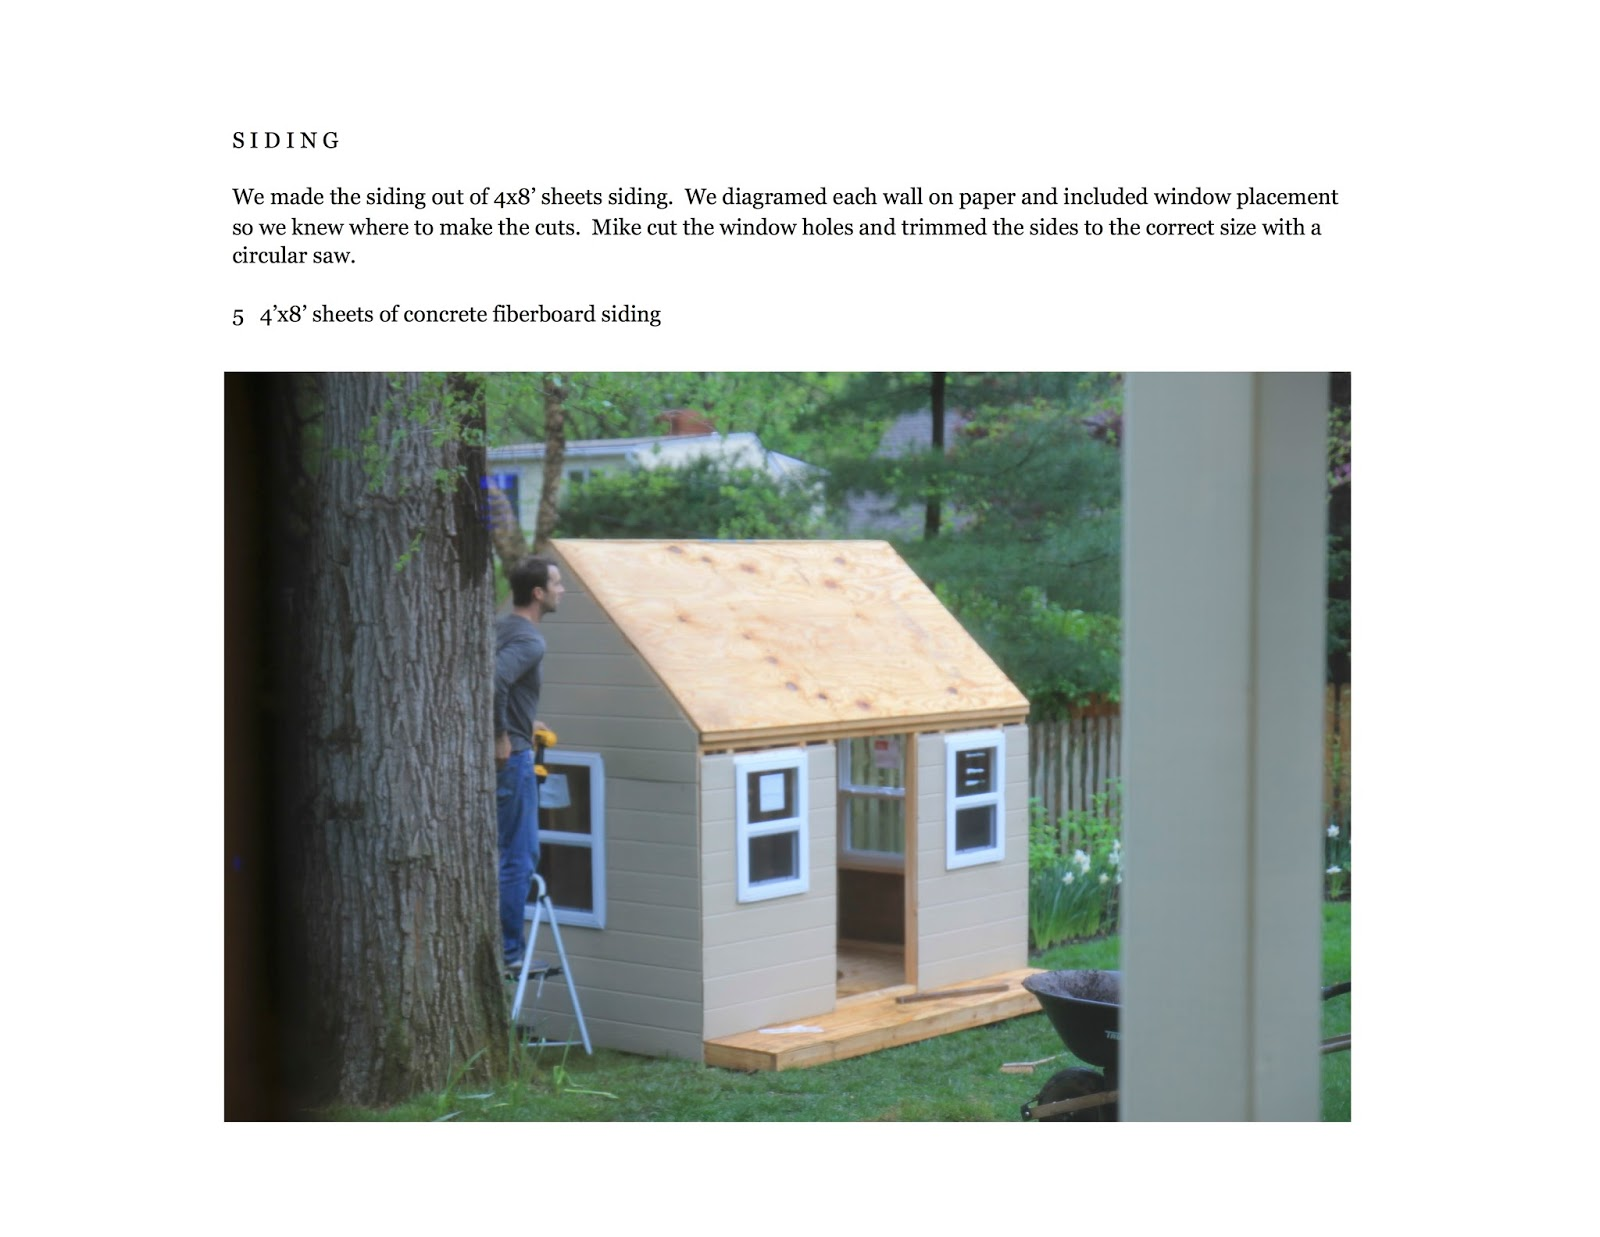 Jenny steffens hobick we built a playhouse diy workbook for Blueprints for playhouse